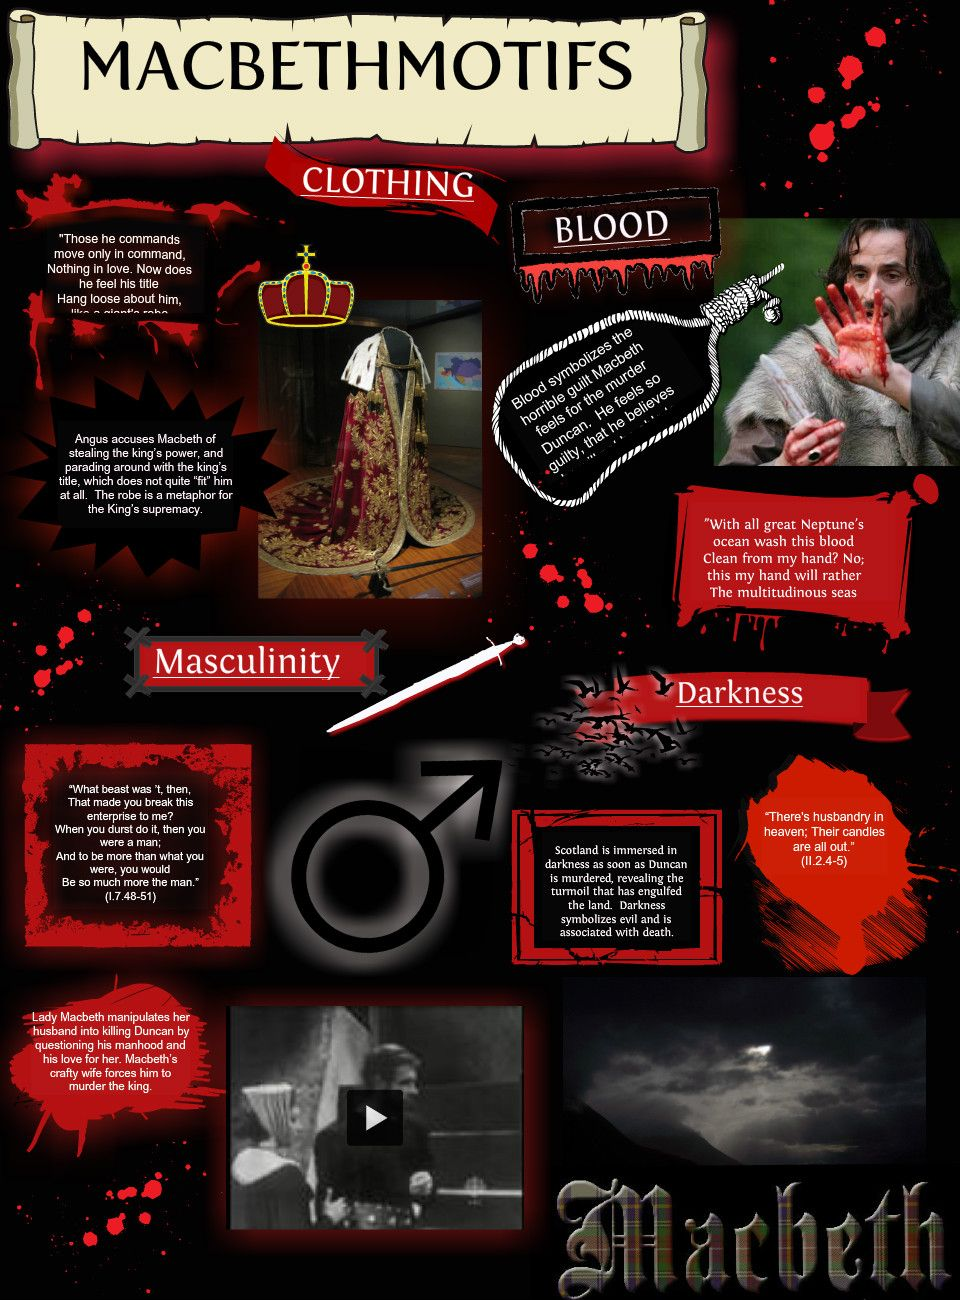 a literary analysis of blood imagery in julius caesar by william shakespeare From plot debriefs to key motifs, thug notes' julius caesar by william shakespeare summary & analysis has you covered with themes, symbols, important quotes, and more get the book here on .